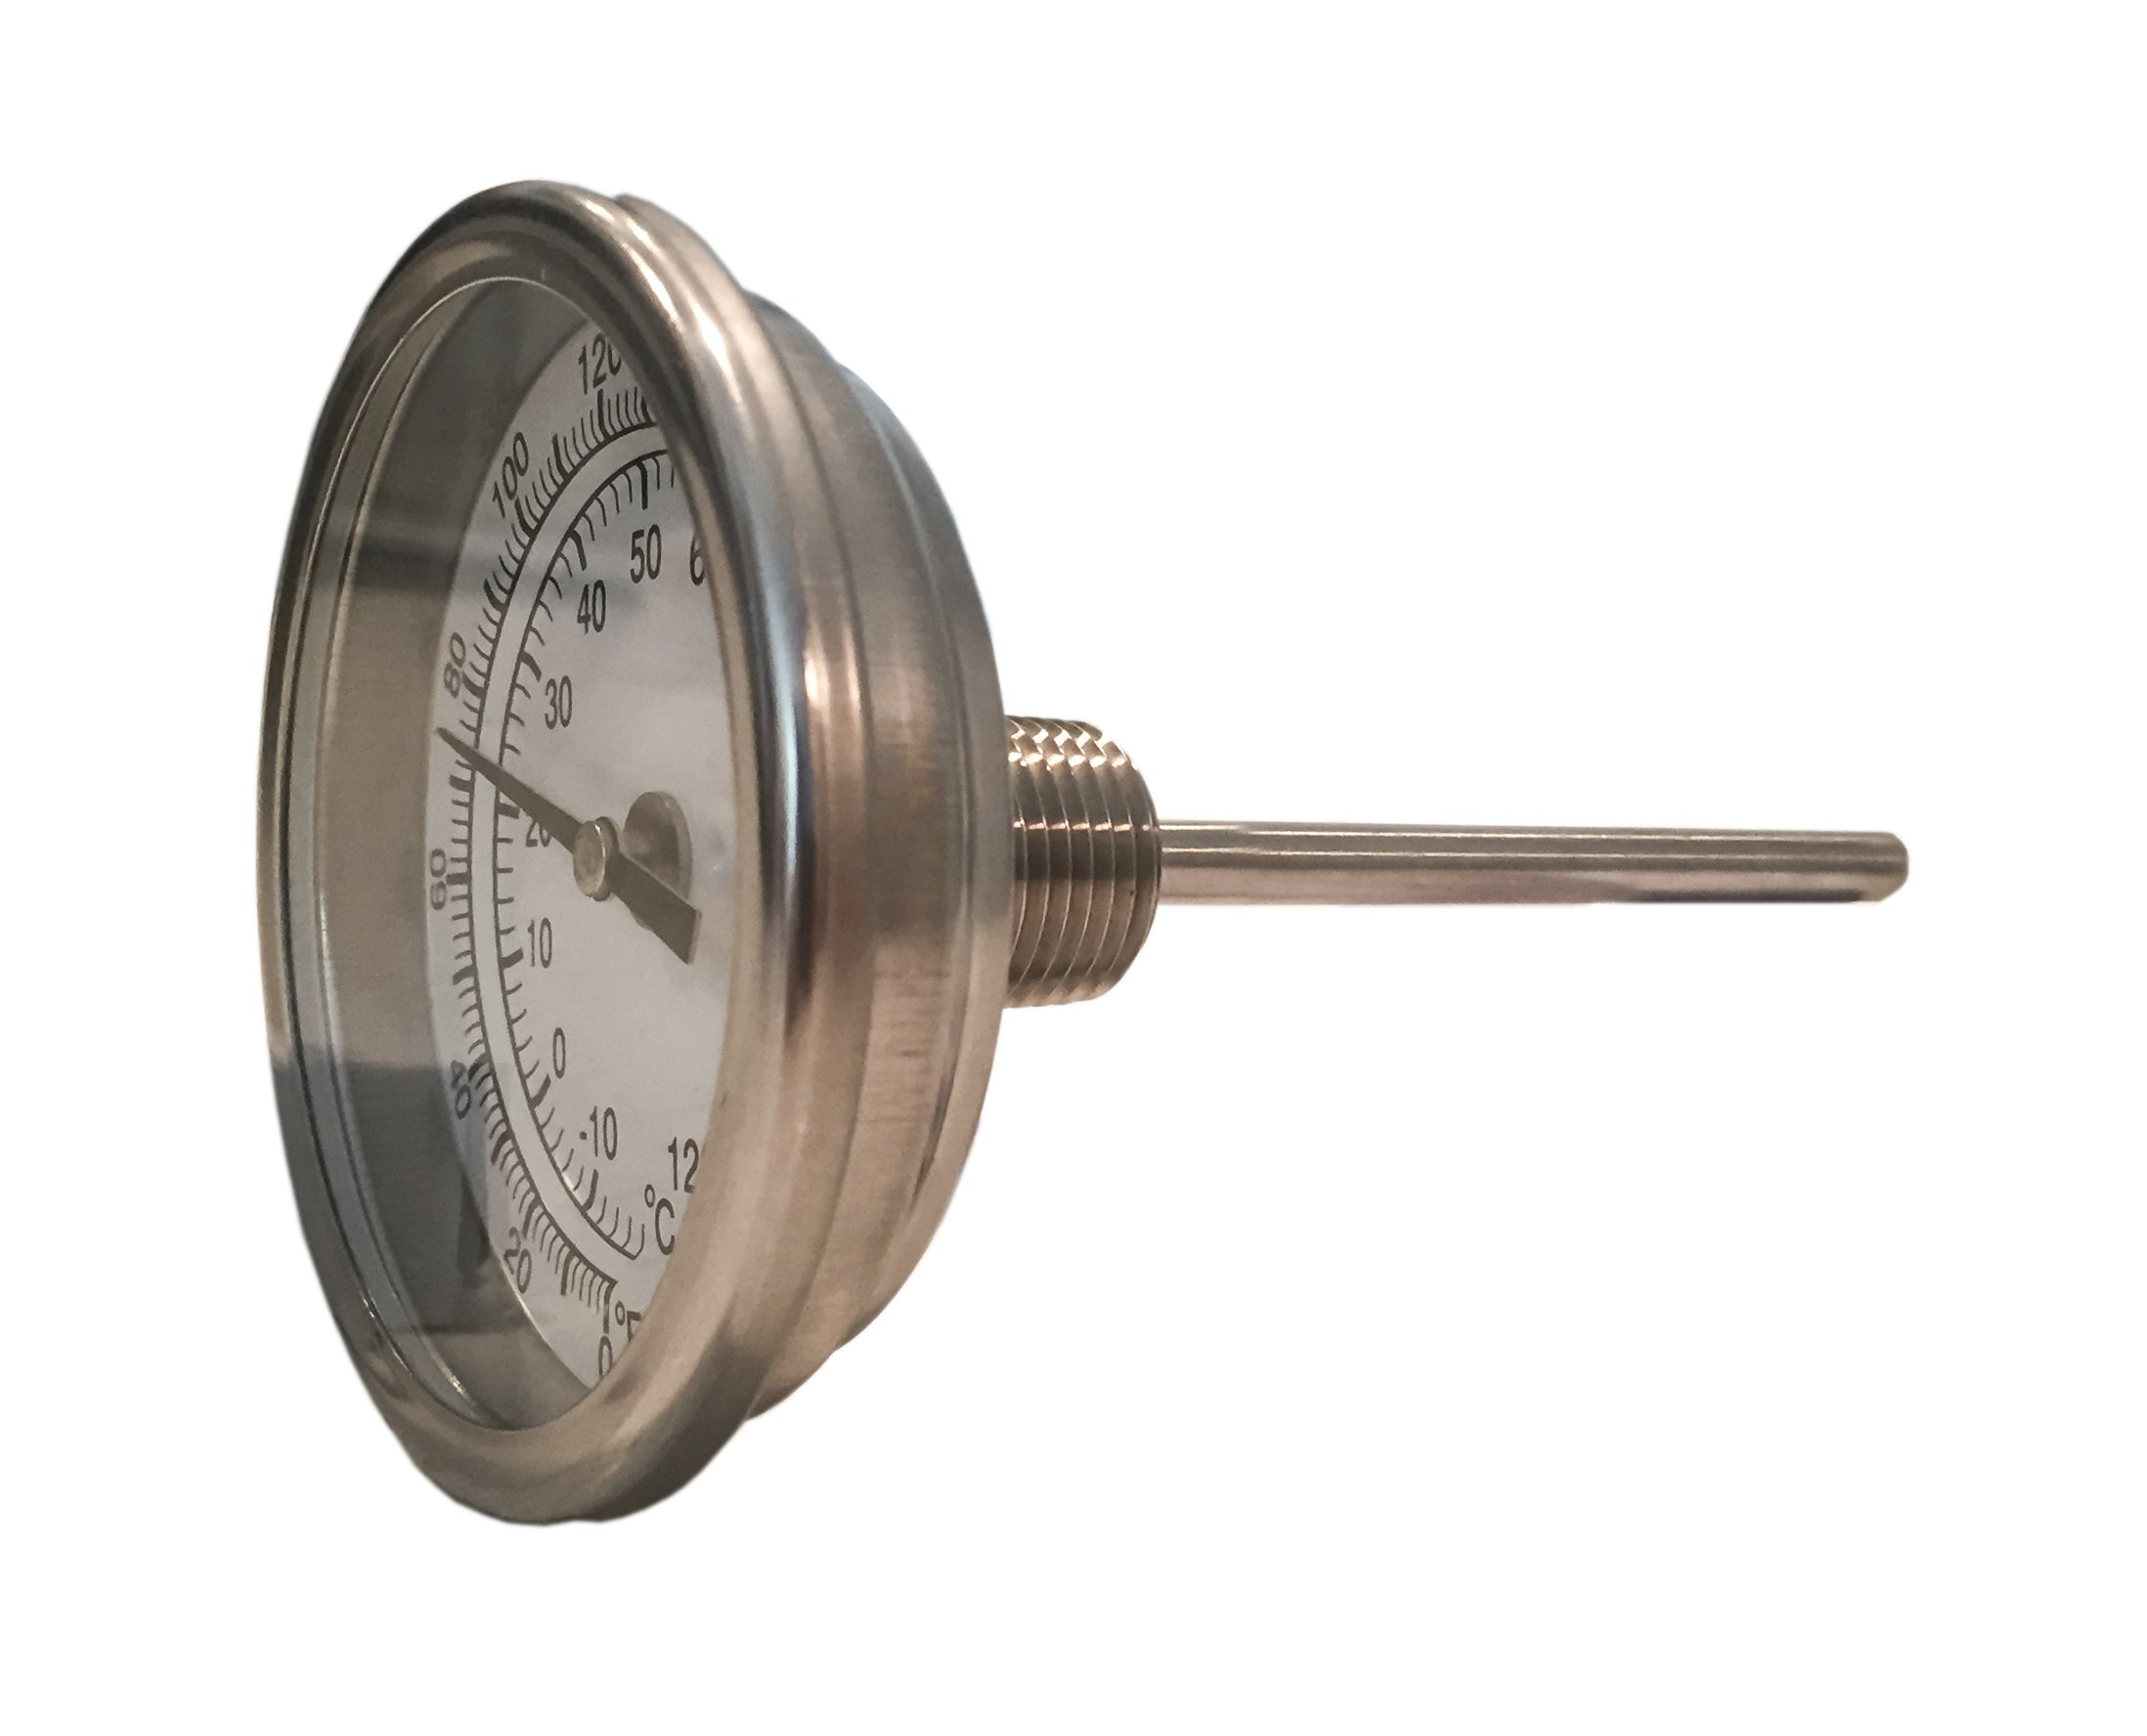 CNSG 3'' Dial x 4'' Stem Brewing/Distilling Thermometer with 1/2'' NPT